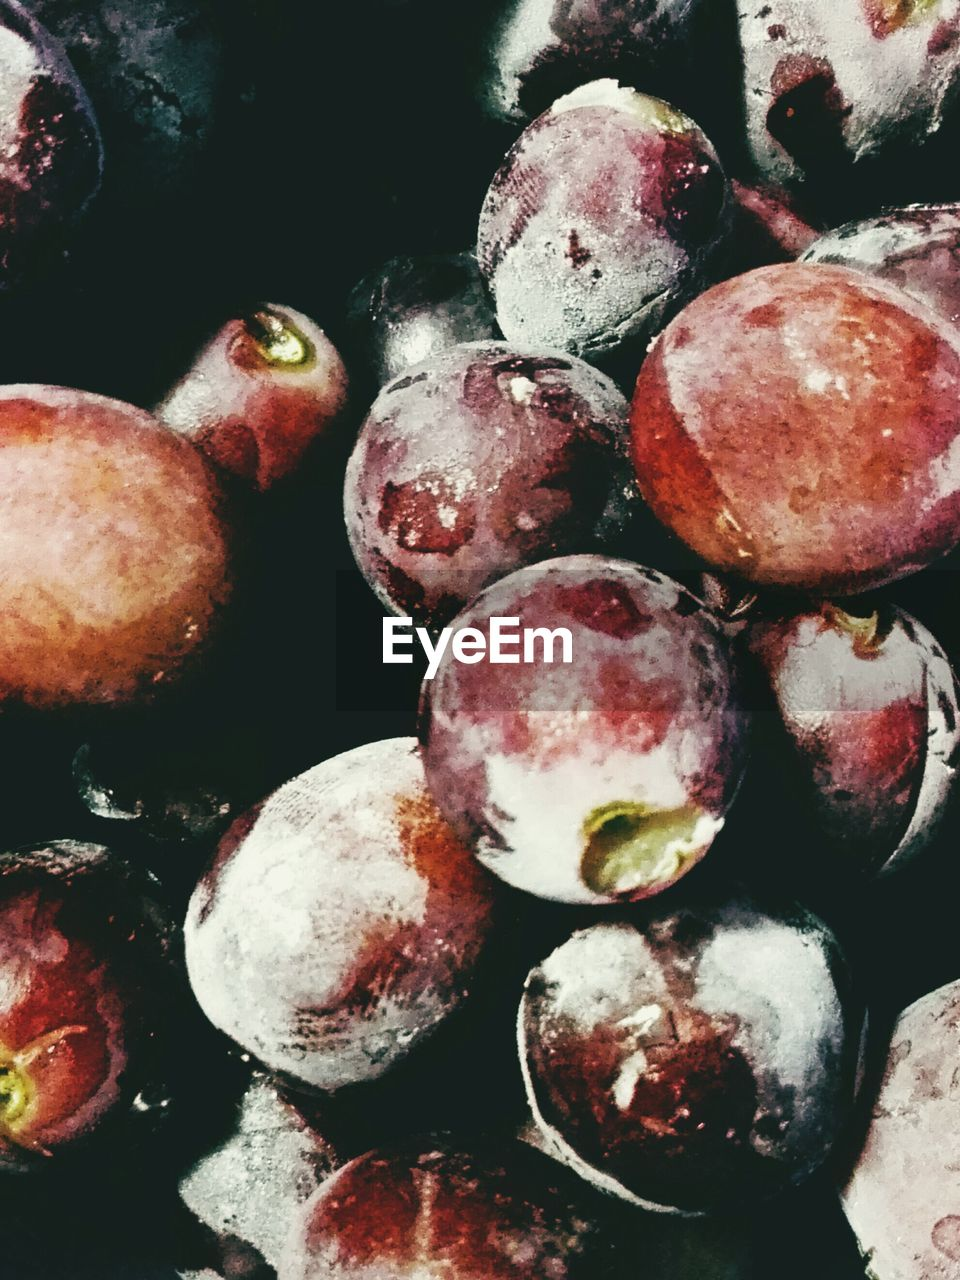 fruit, food and drink, no people, close-up, freshness, healthy eating, food, outdoors, nature, day, water